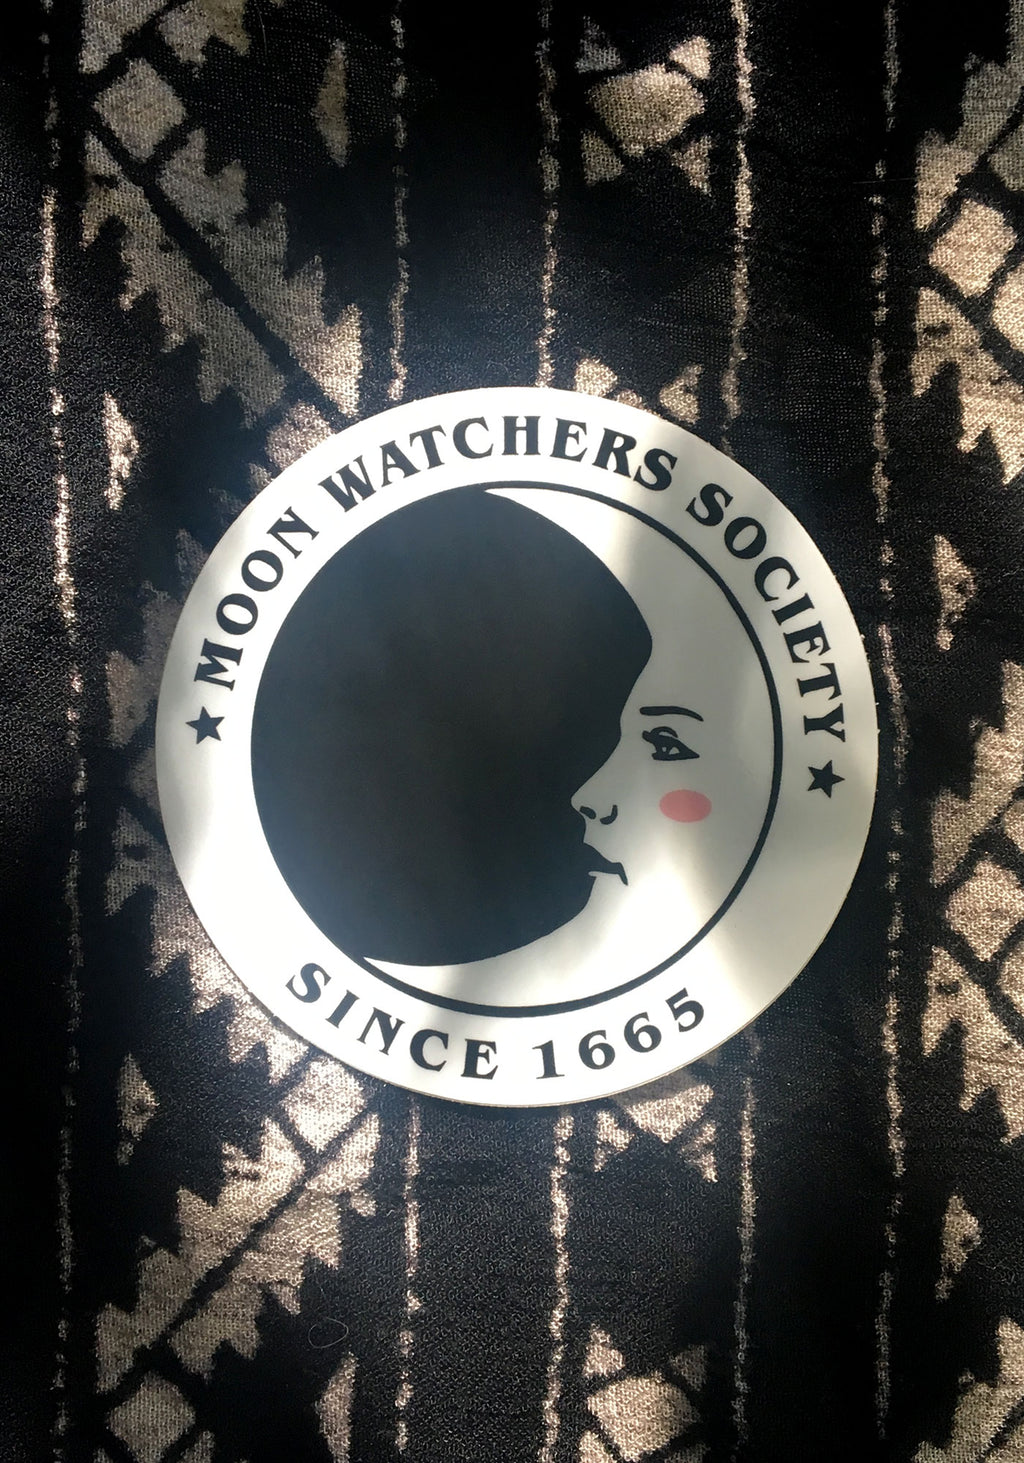 Moon Watchers Sticker / stickers pack set laptop art / witch witchy vintage style / tarot mystical / psychic magic / vinyl die cut decal